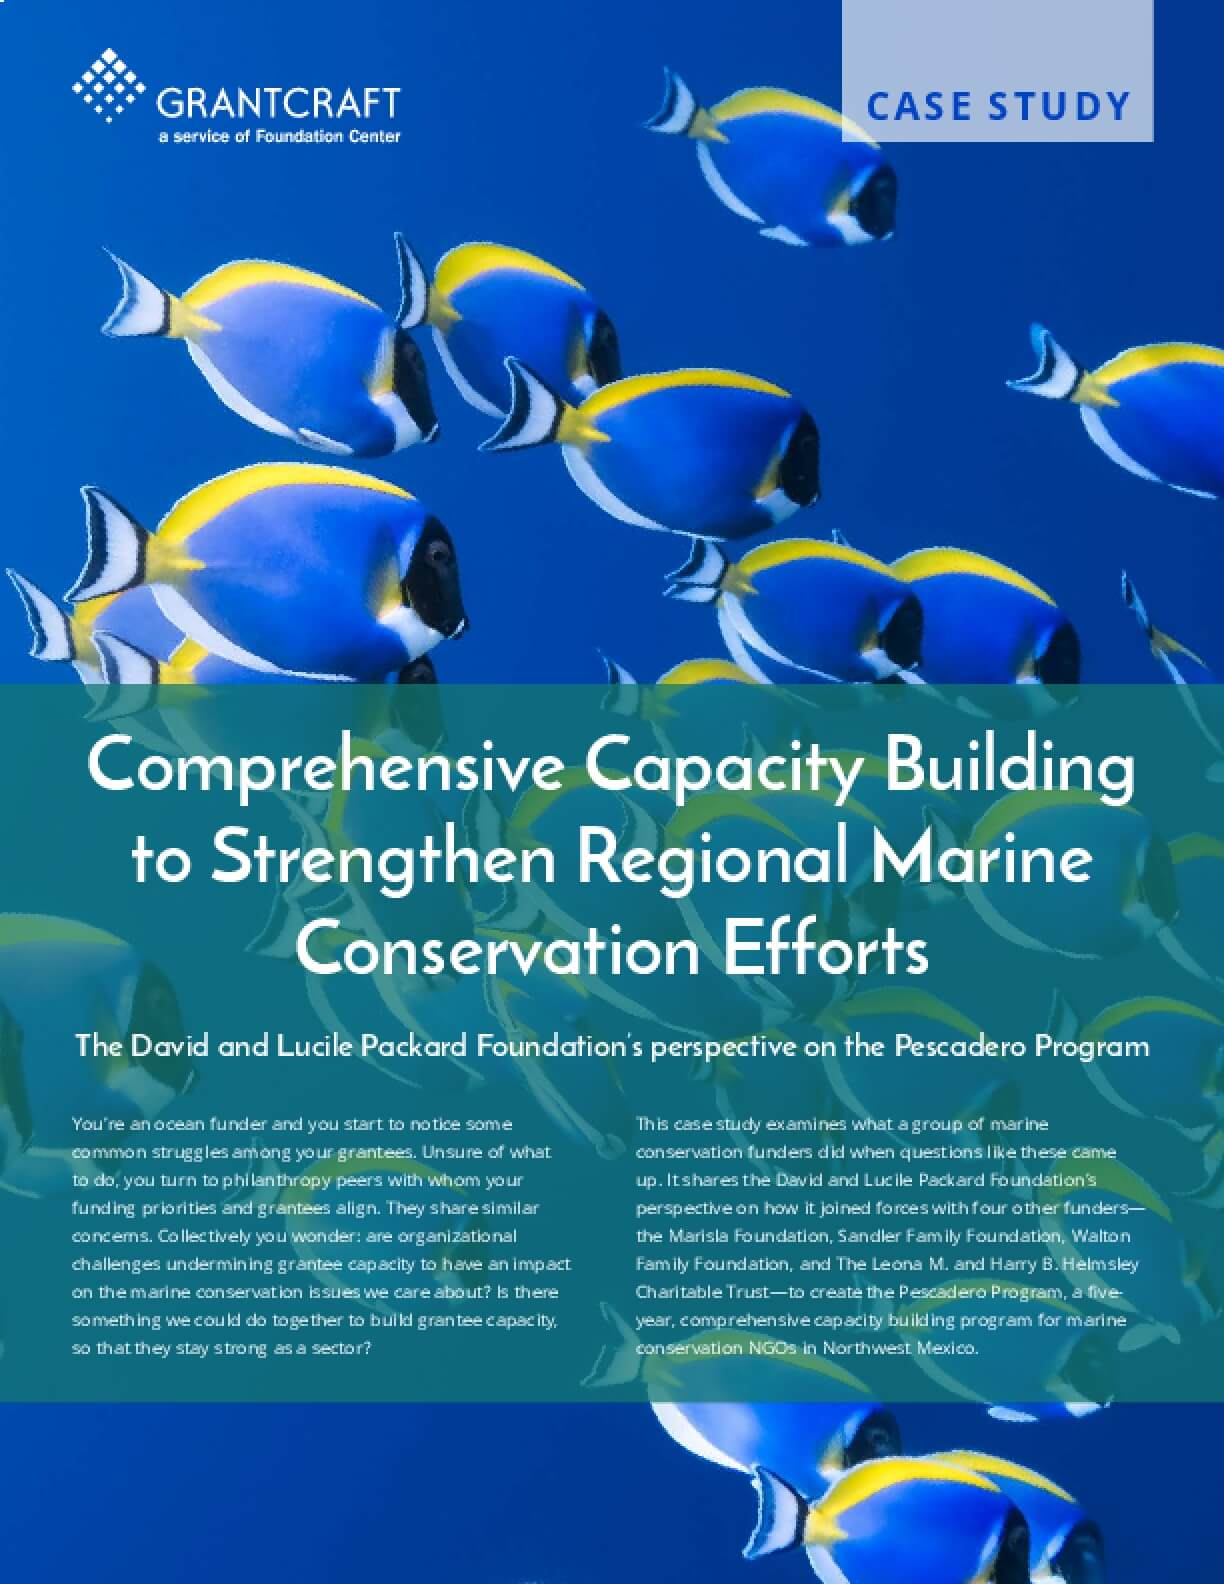 Comprehensive Capacity Building to Strengthen Regional Marine Conservation Efforts